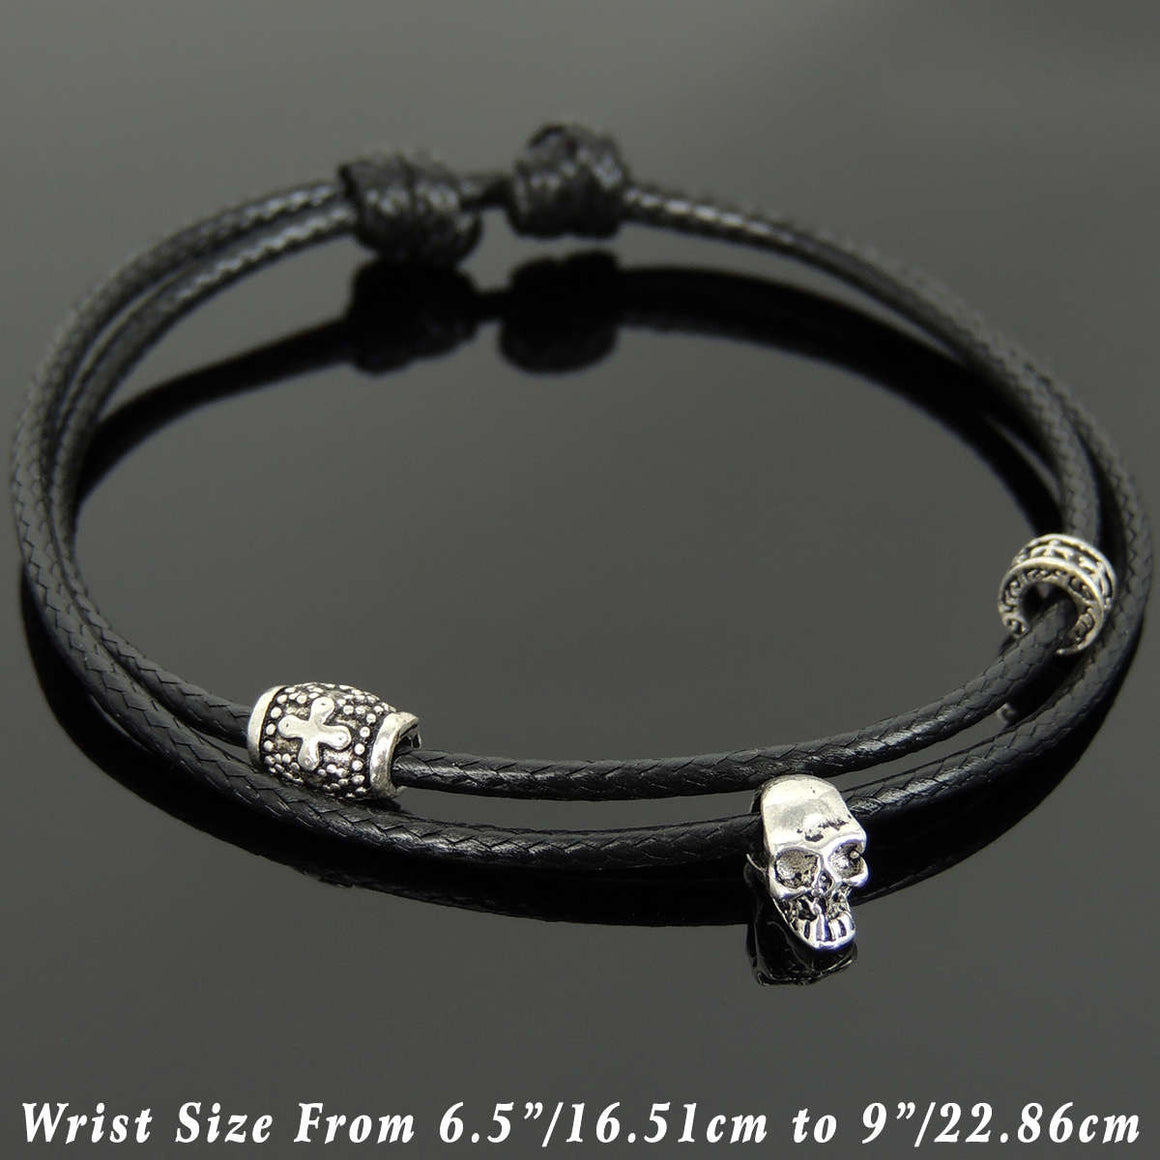 Adjustable Wax Rope Bracelet with S925 Sterling Silver Vintage Skull & Cross Barrel Spacer Beads - Handmade by Gem & Silver BR1105